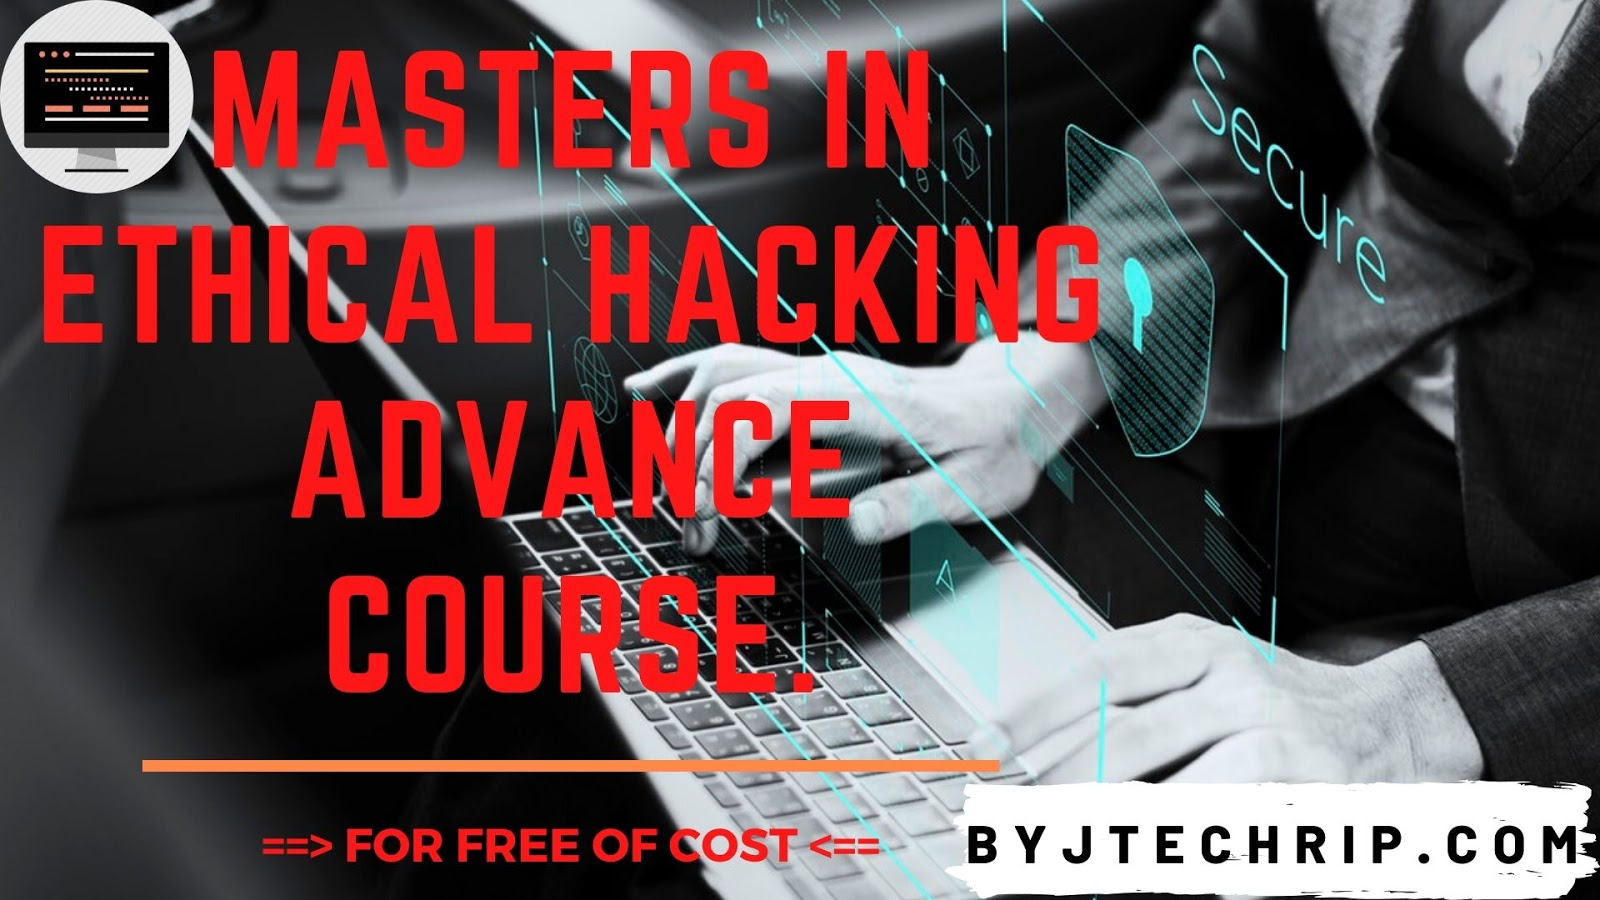 Masters in Ethical Hacking Advance Course.